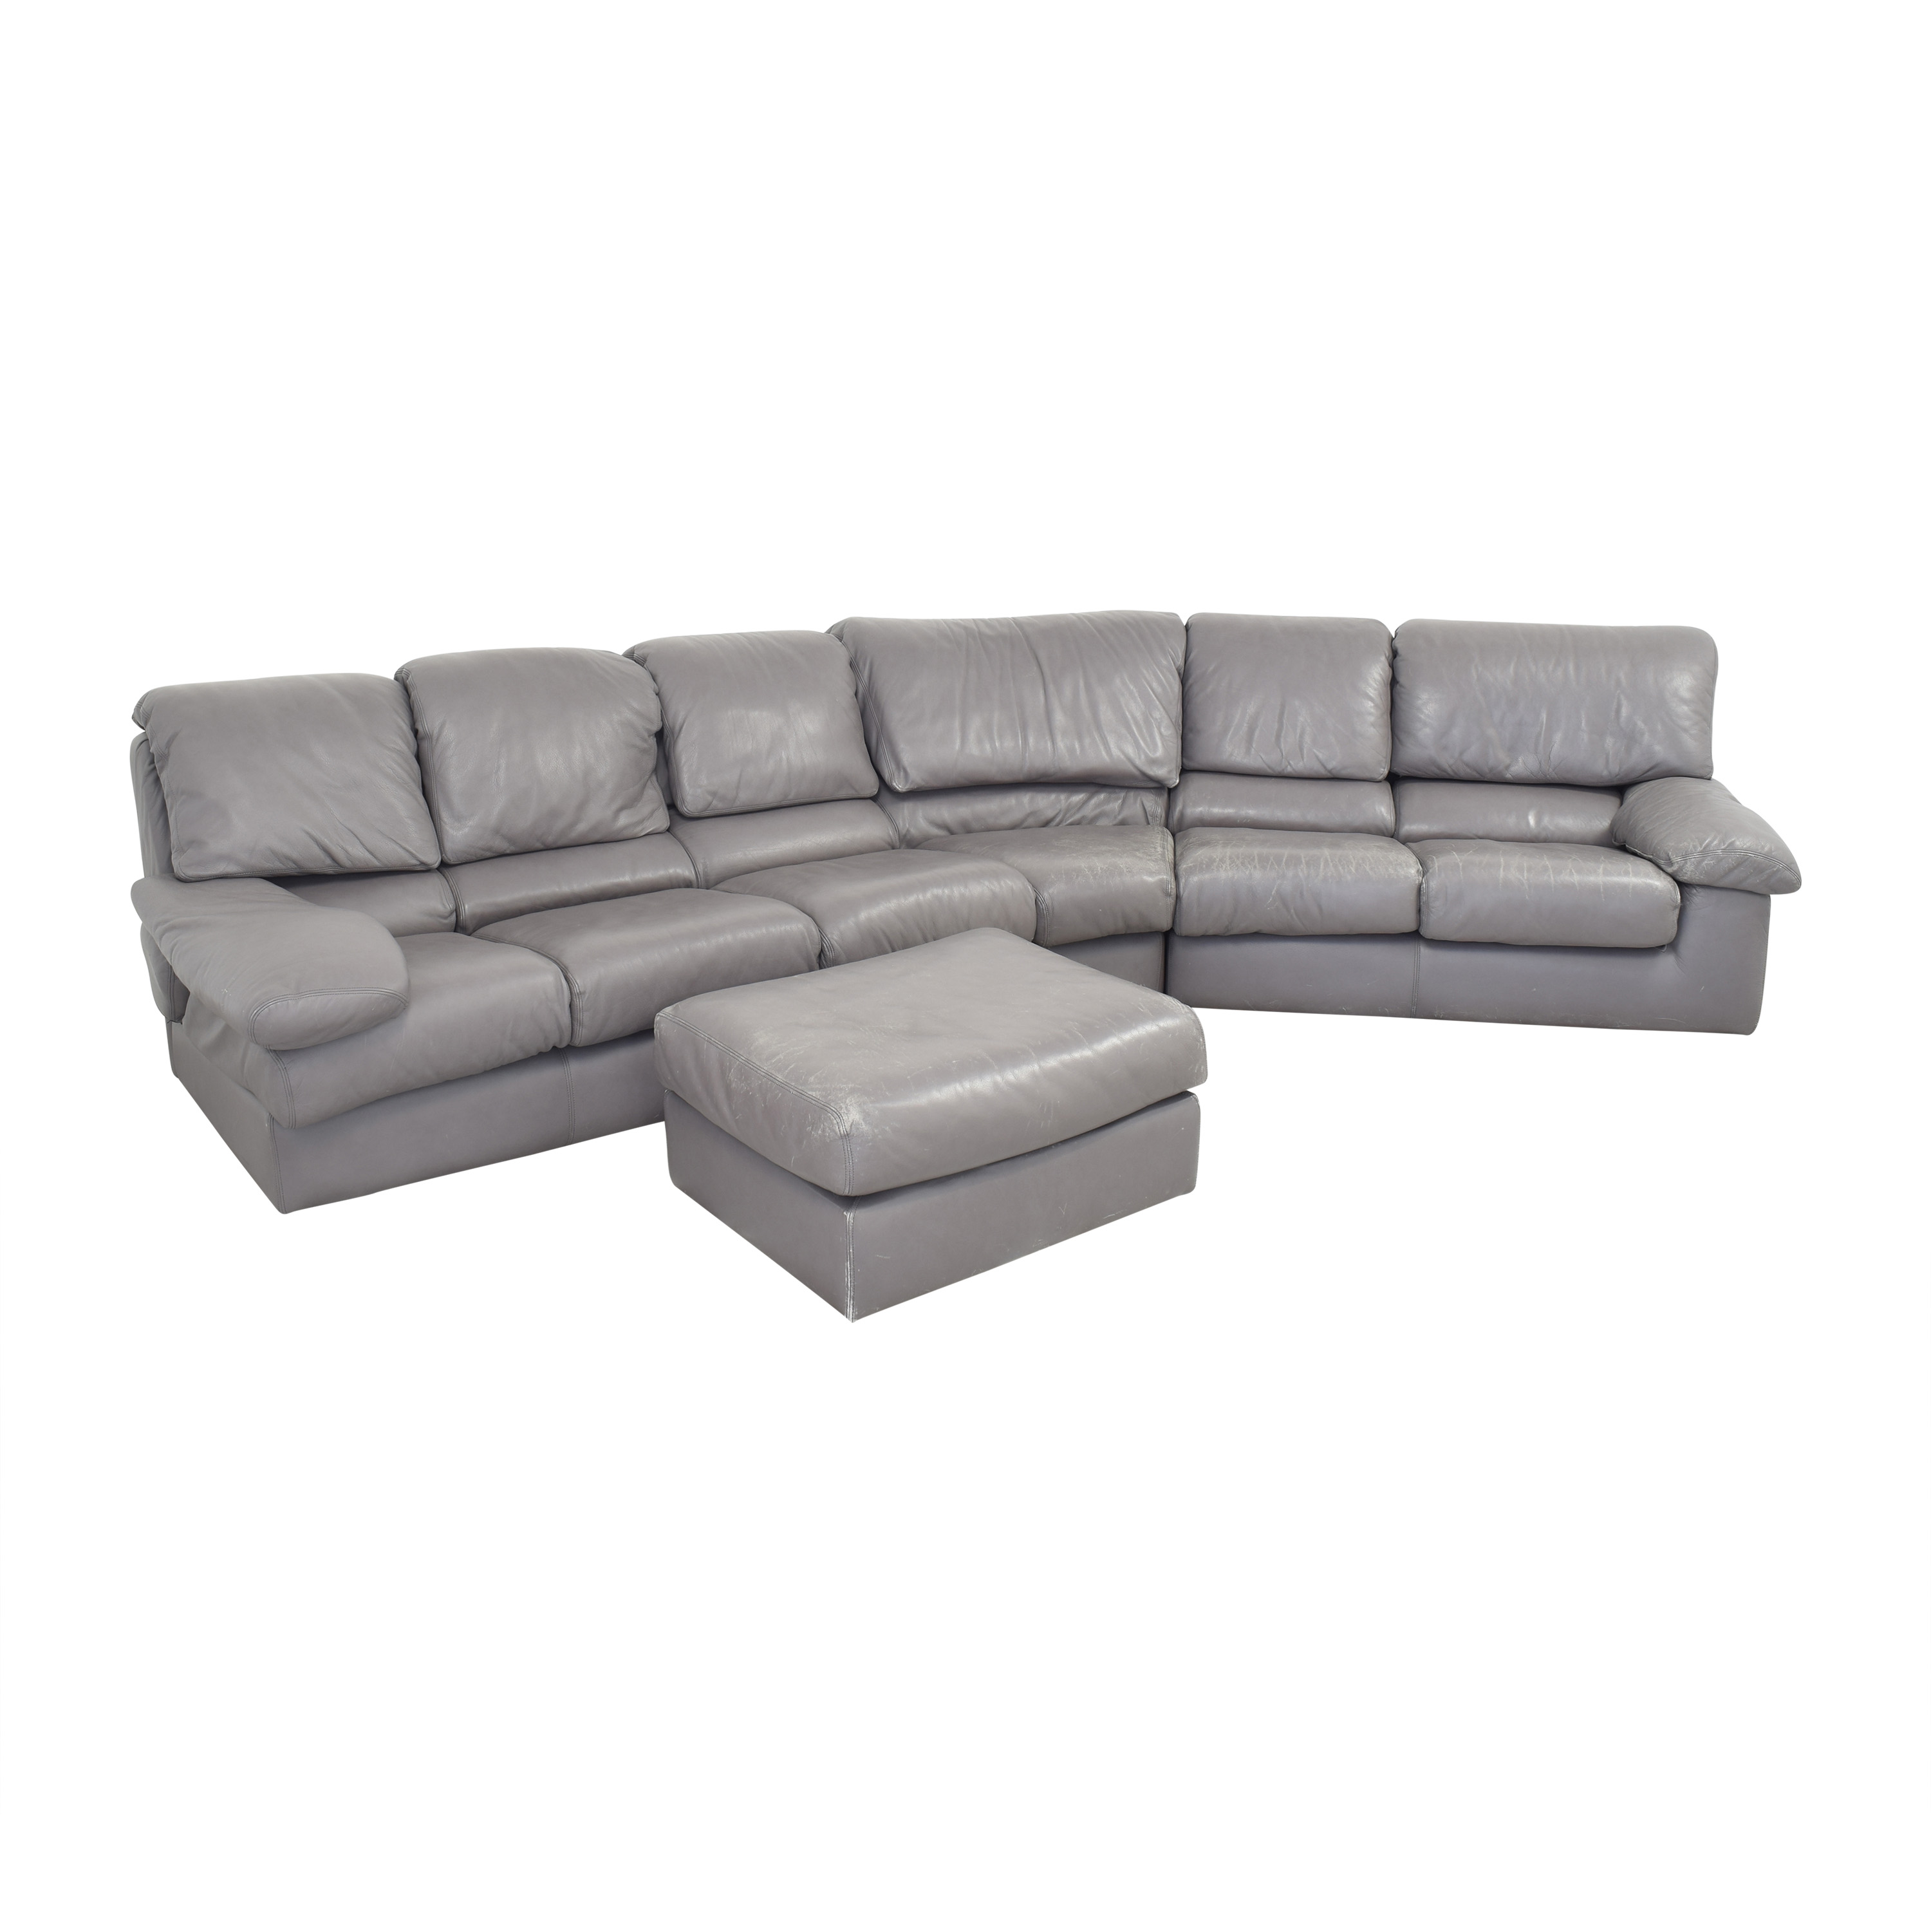 Leather Center Leather Center Curved Sectional Sofa with Ottoman used